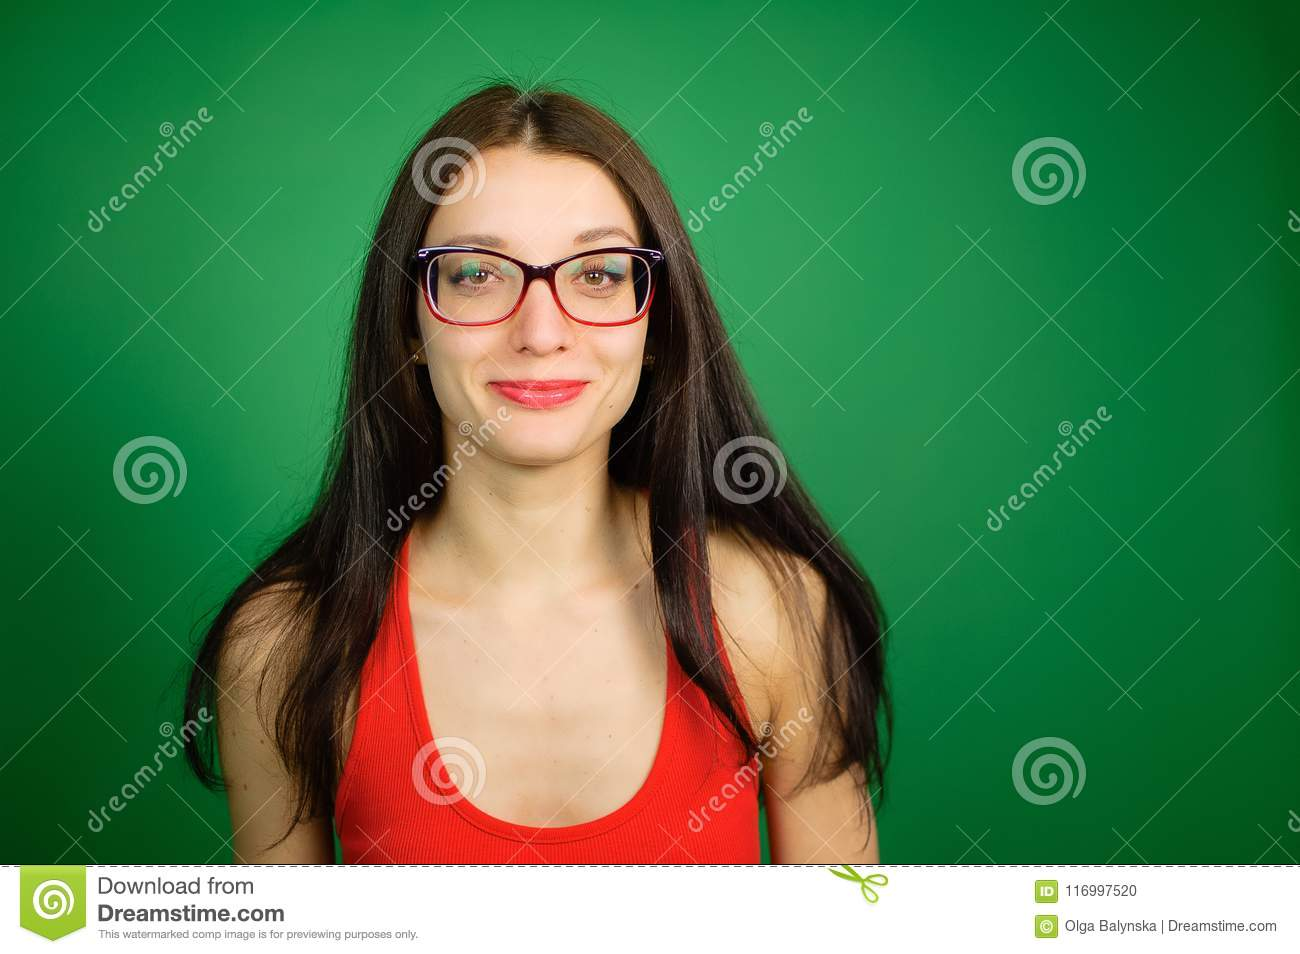 d85033ab5cda Studio Portrait of Cute Smart Girl in Eyeglasses and Red Top on Green  Background.